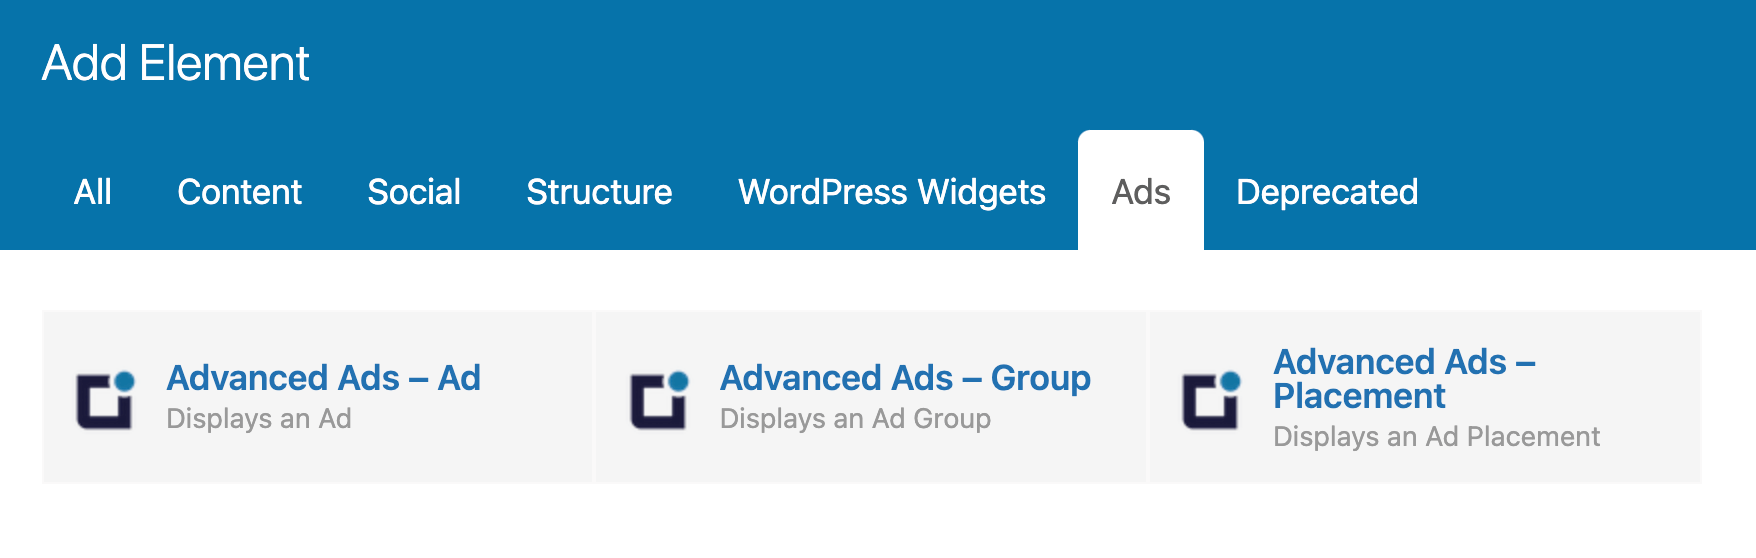 New Ad elements added to the Ad group in Visual Composer